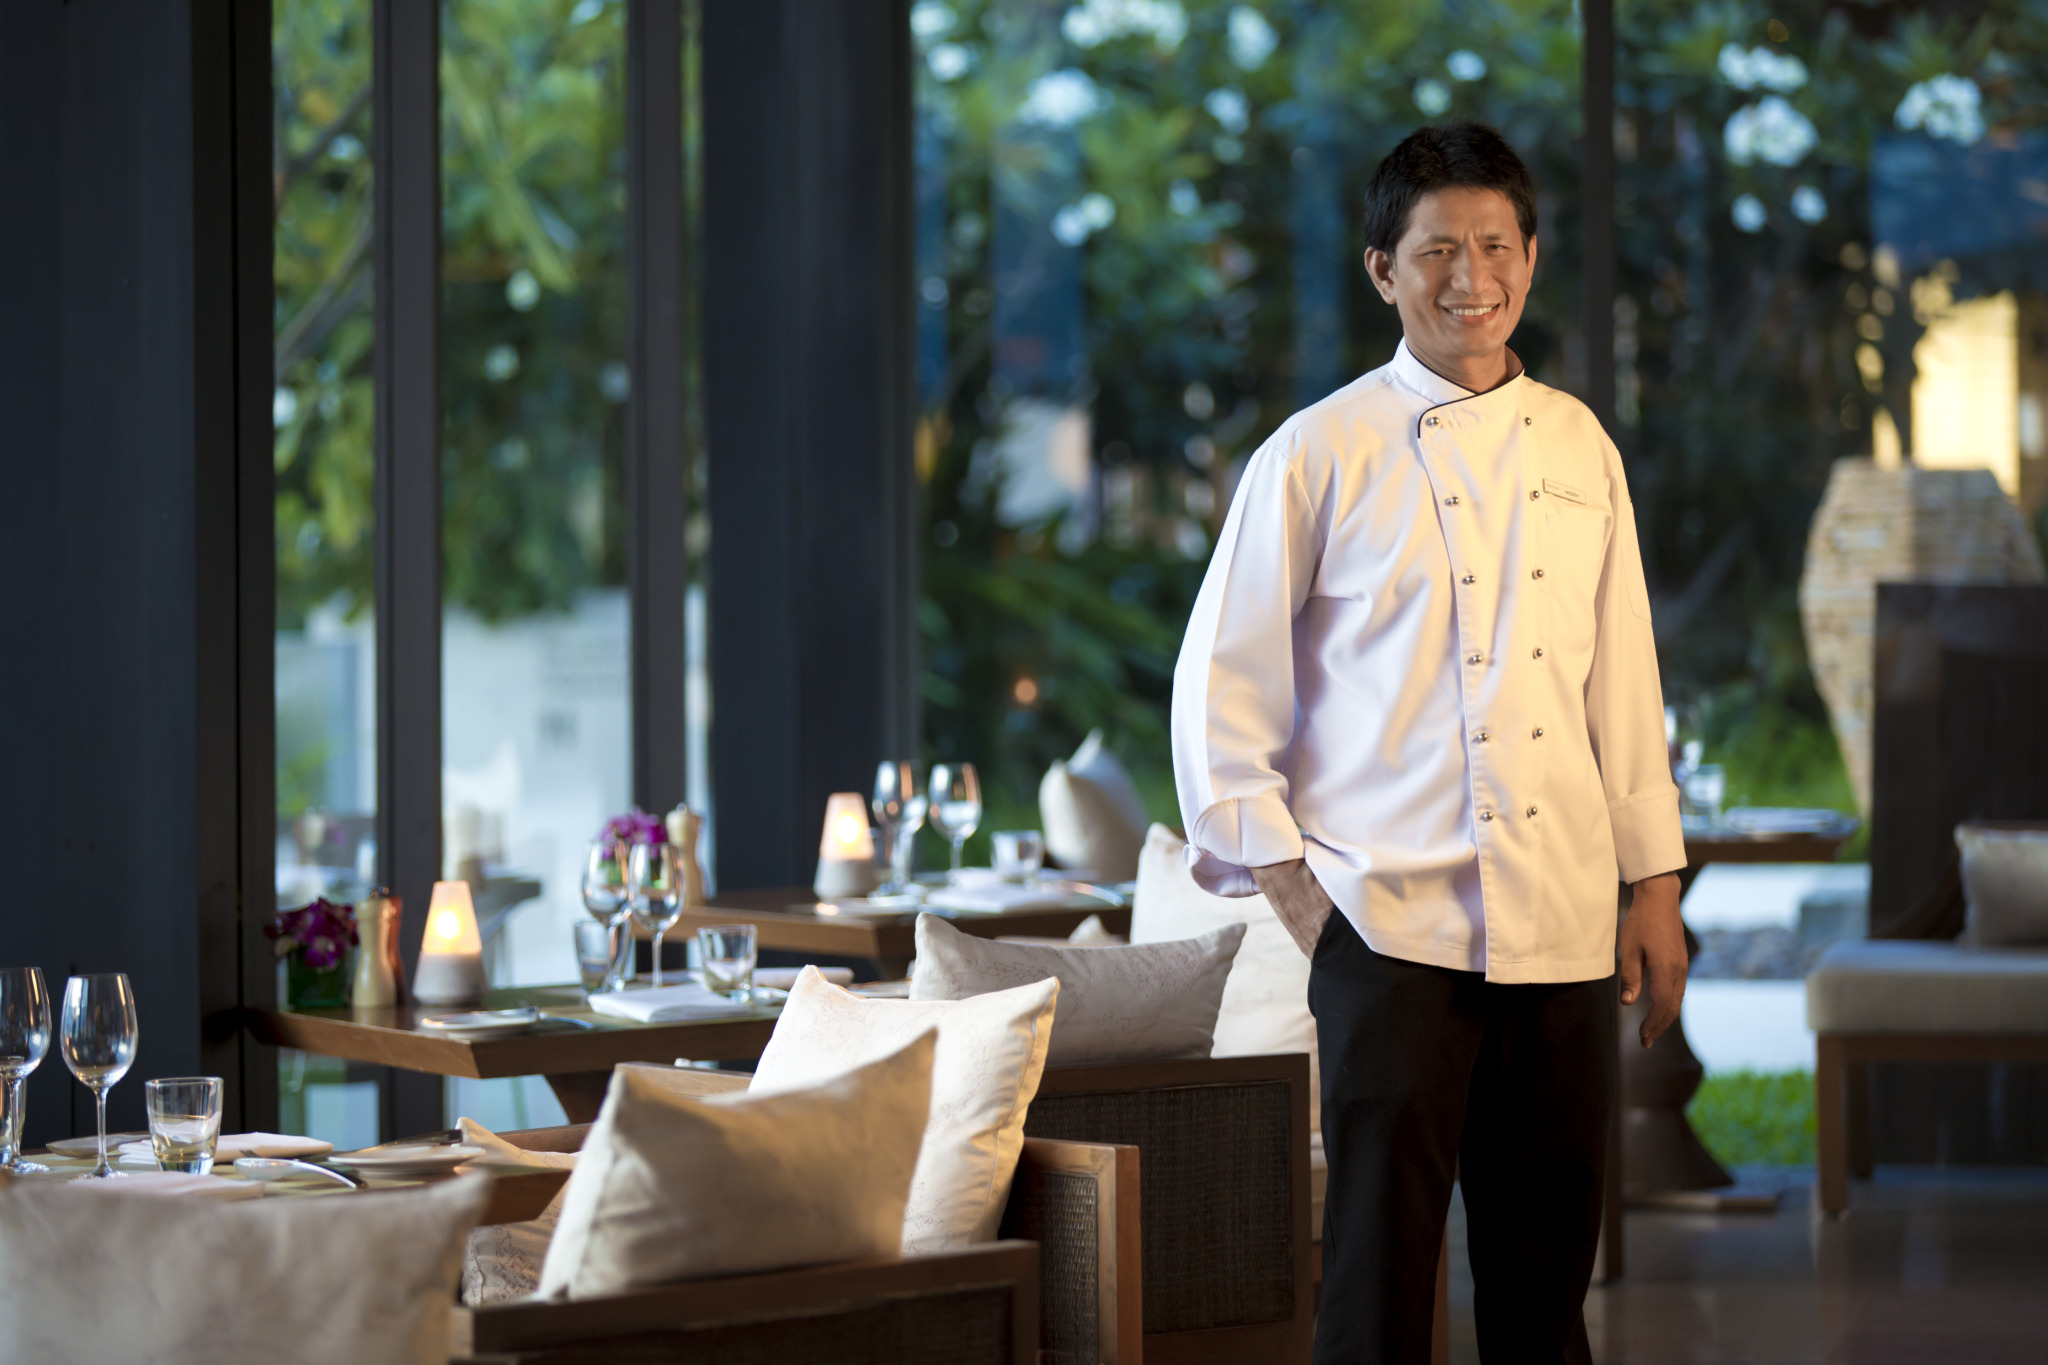 Conrad Koh Samui Appoints Woothigrai Mungjit as Executive Chef | Samui Times